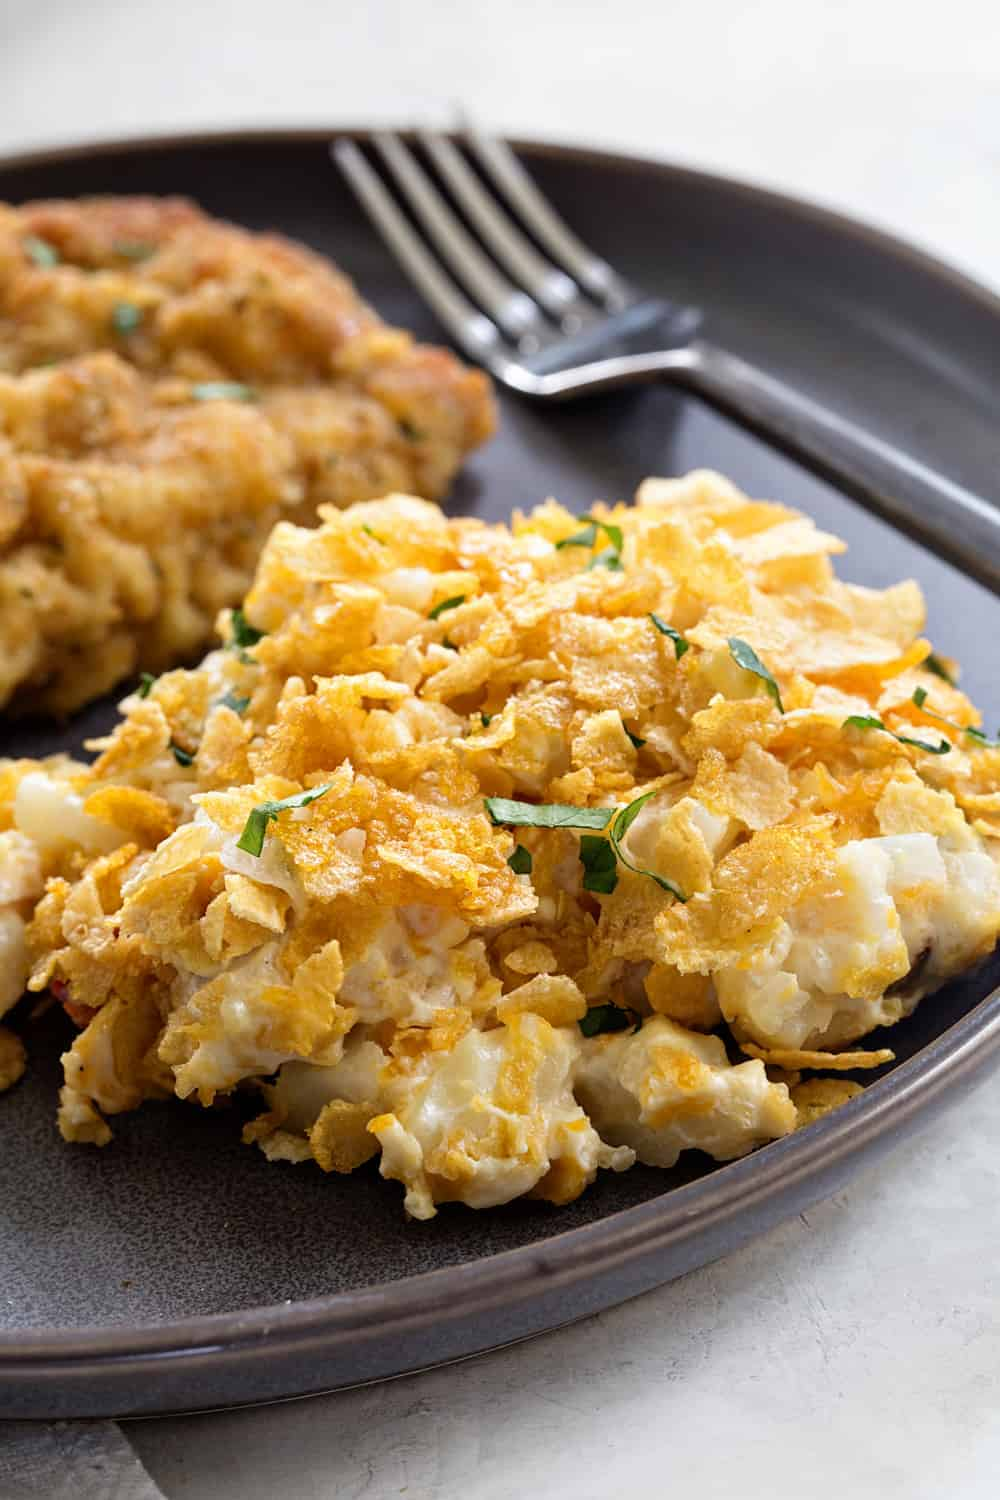 Hash Brown Casserole is simple and delicious. It's the perfect side dish for potlucks, barbecues, and even brunch.